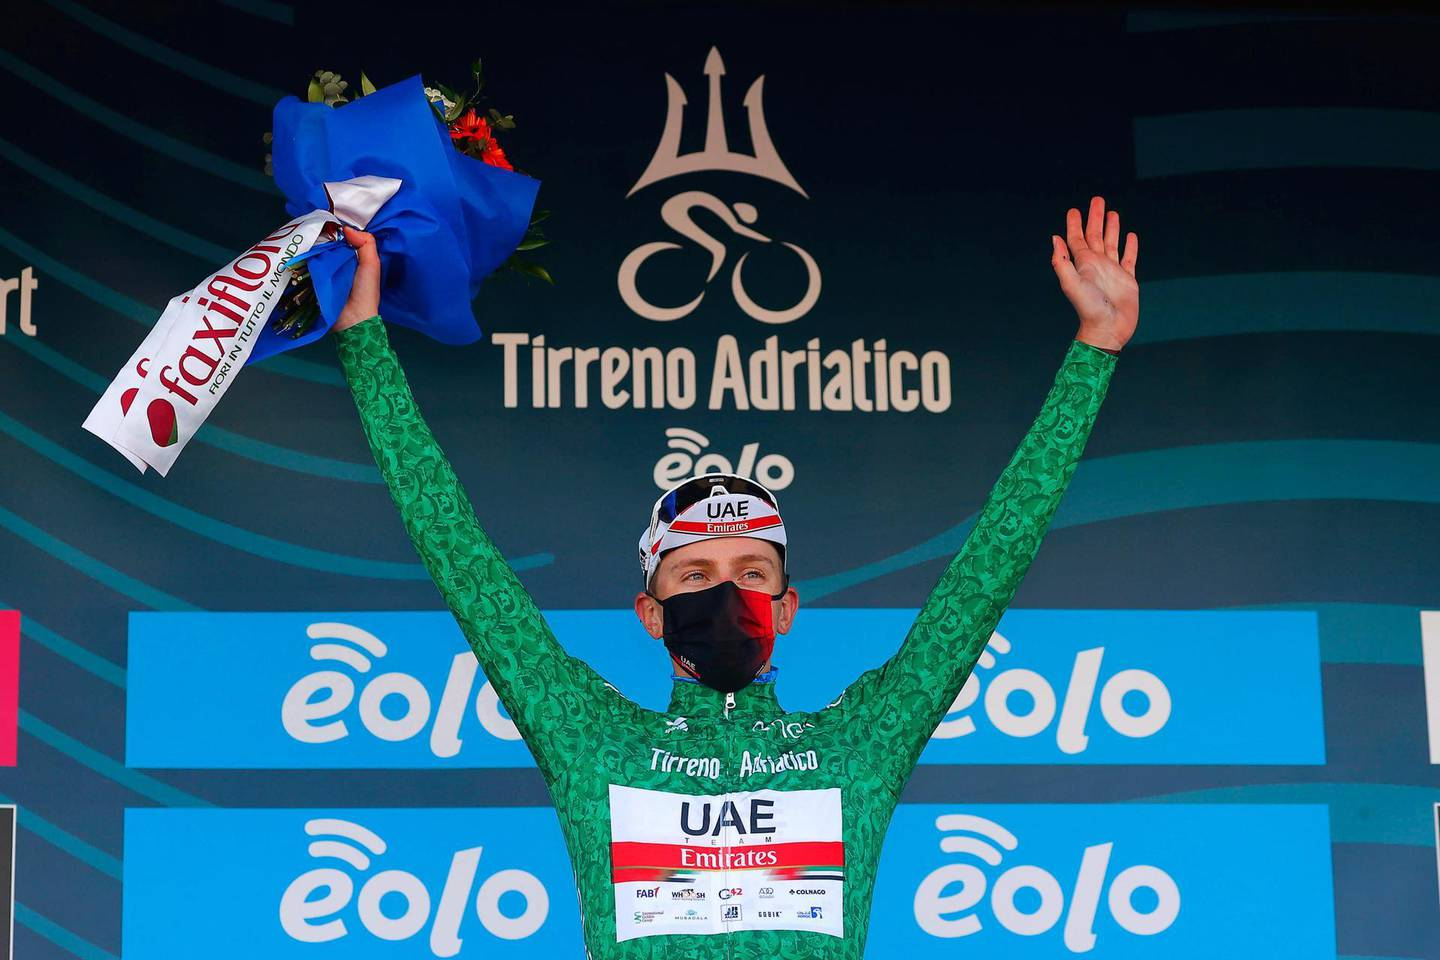 epa09076789 Slovenian rider Tadej Pogacar of the UAE-Team Emirates team celebrates on the podium after retaining the best climber's green jersey following the 6th stage of the Tirreno-Adriatico cycling race over 169km from Castelraimondo to Lido di Fermo, Italy, 15 March 2021.  EPA/LUCA BETTINI